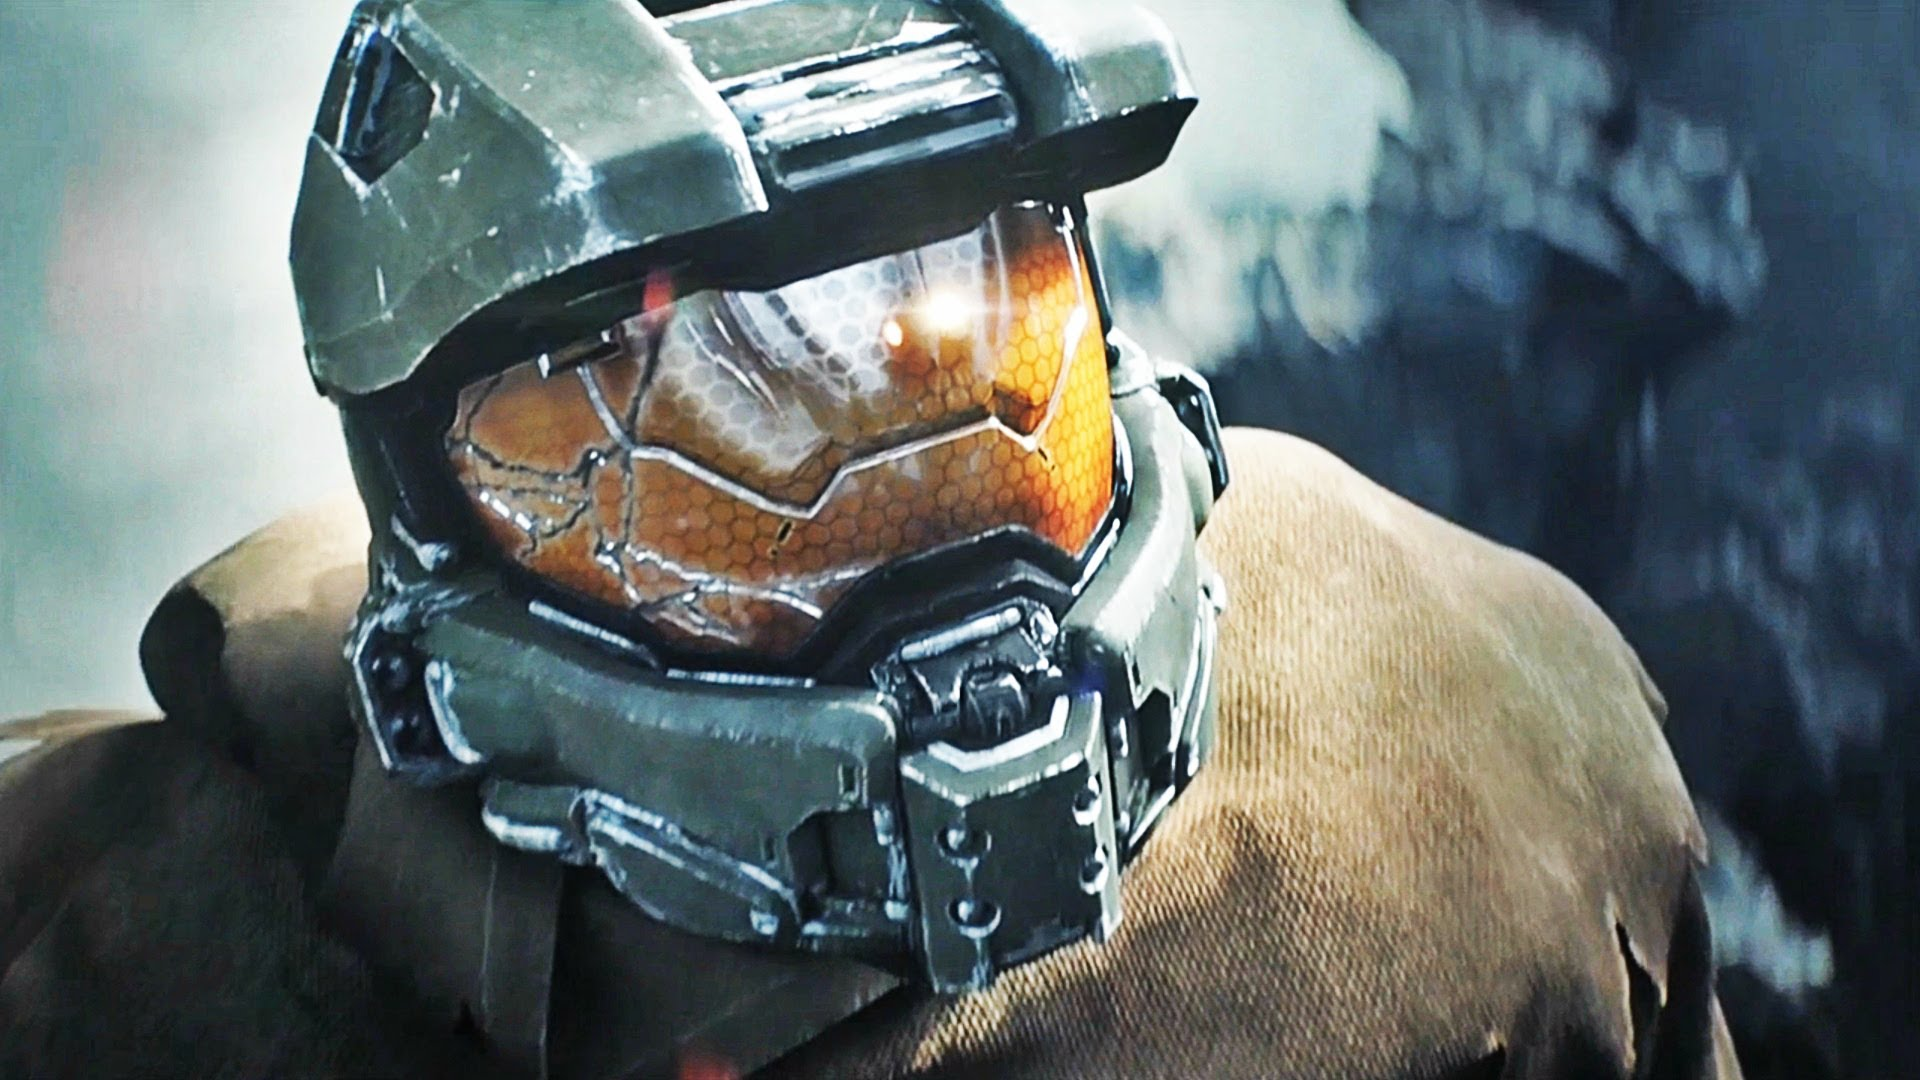 Halo 5 Trailer E3 2013 Xbox One E3M13 1920x1080